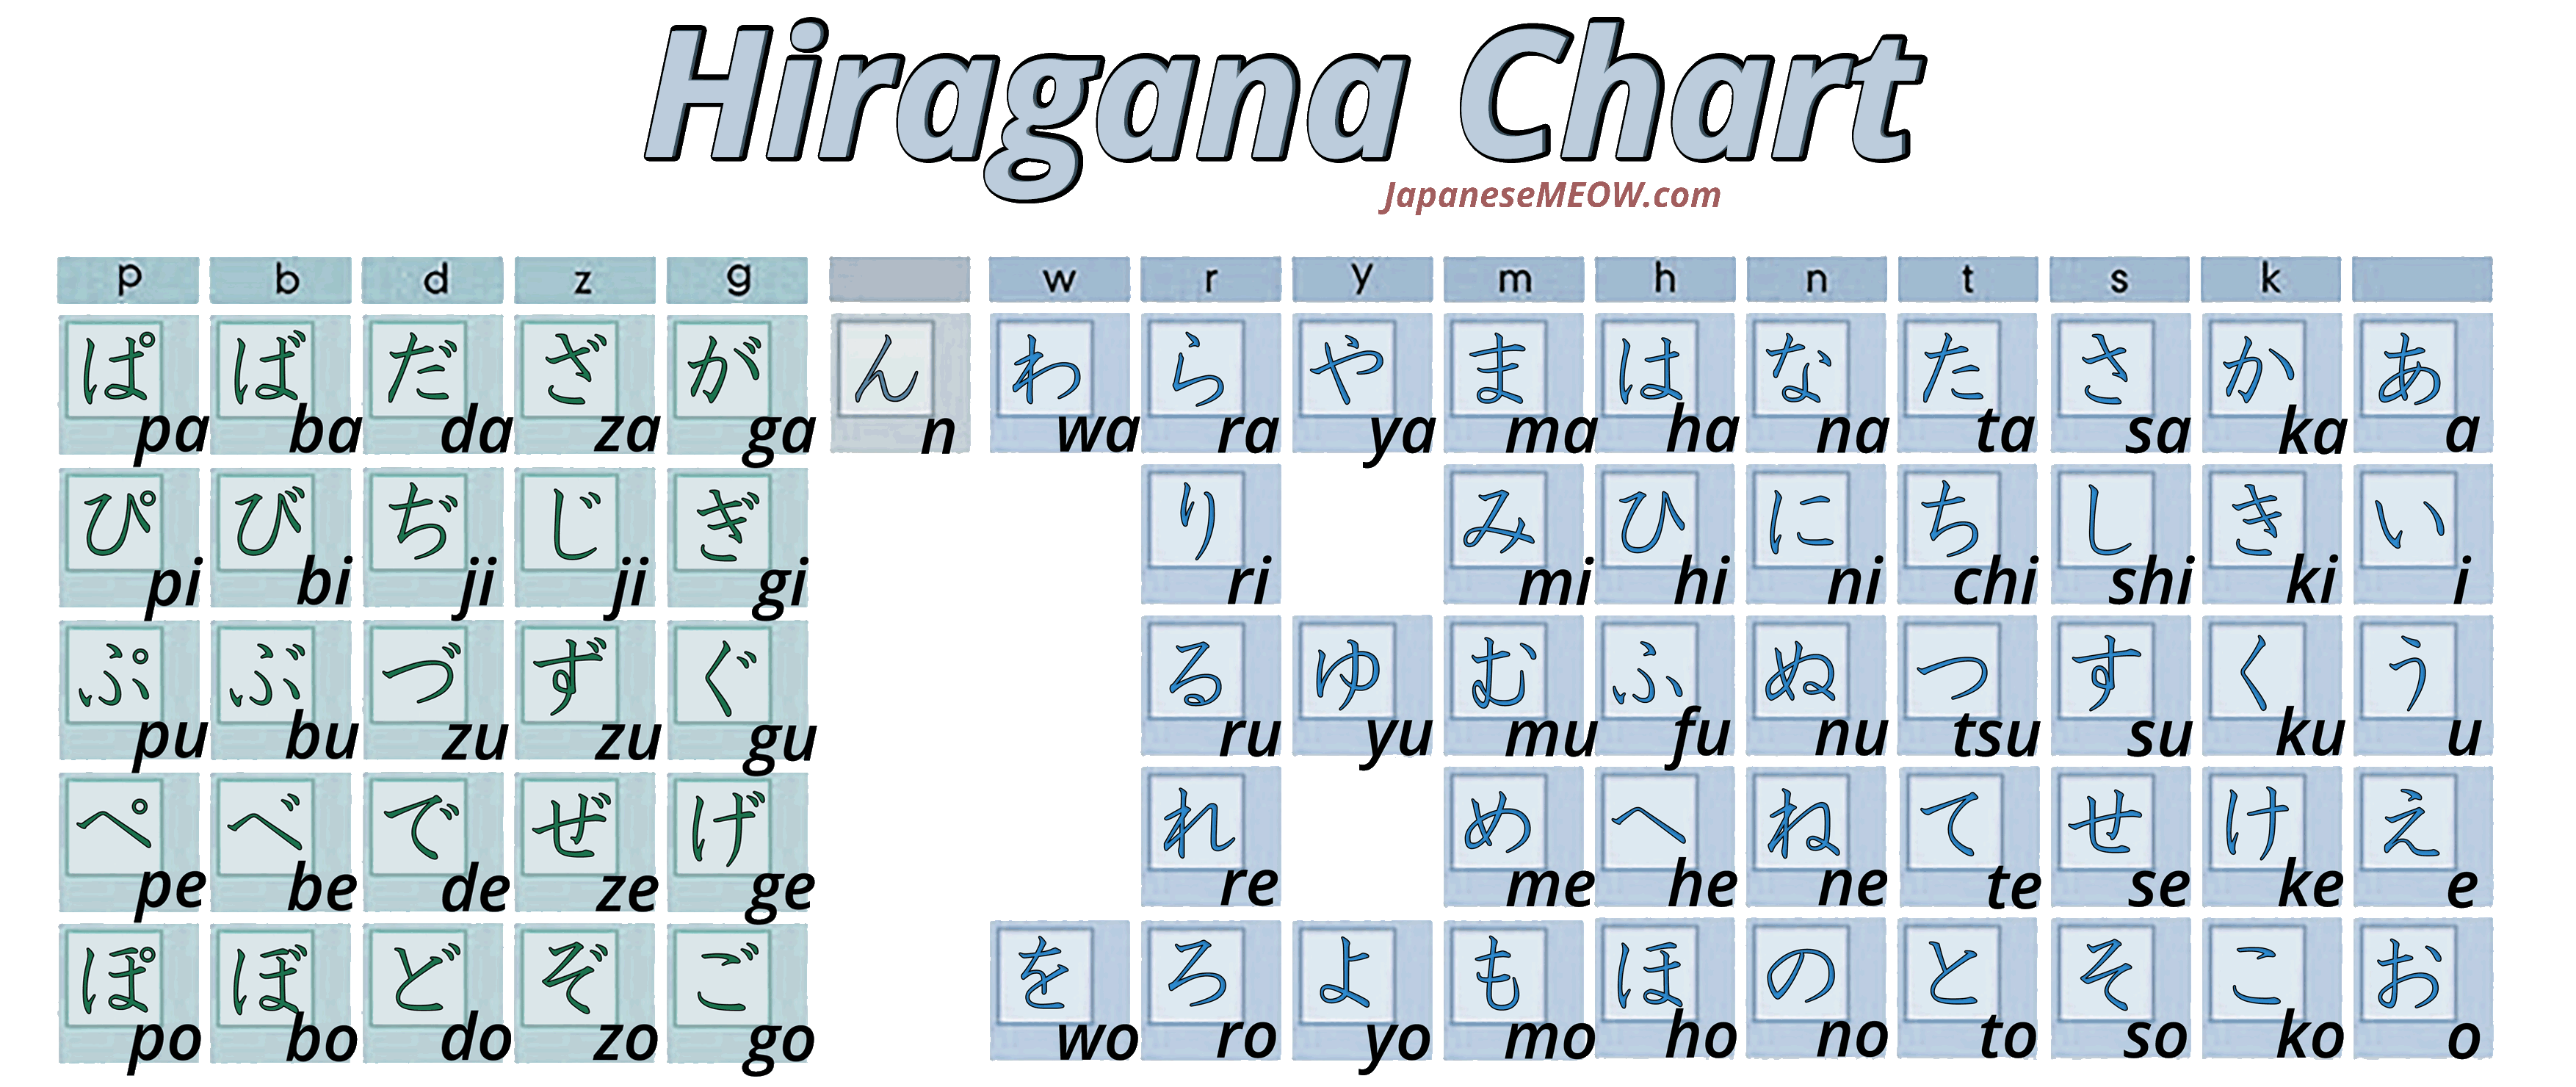 Read And Write Hiragana Katakana Kanji At Anesemeow